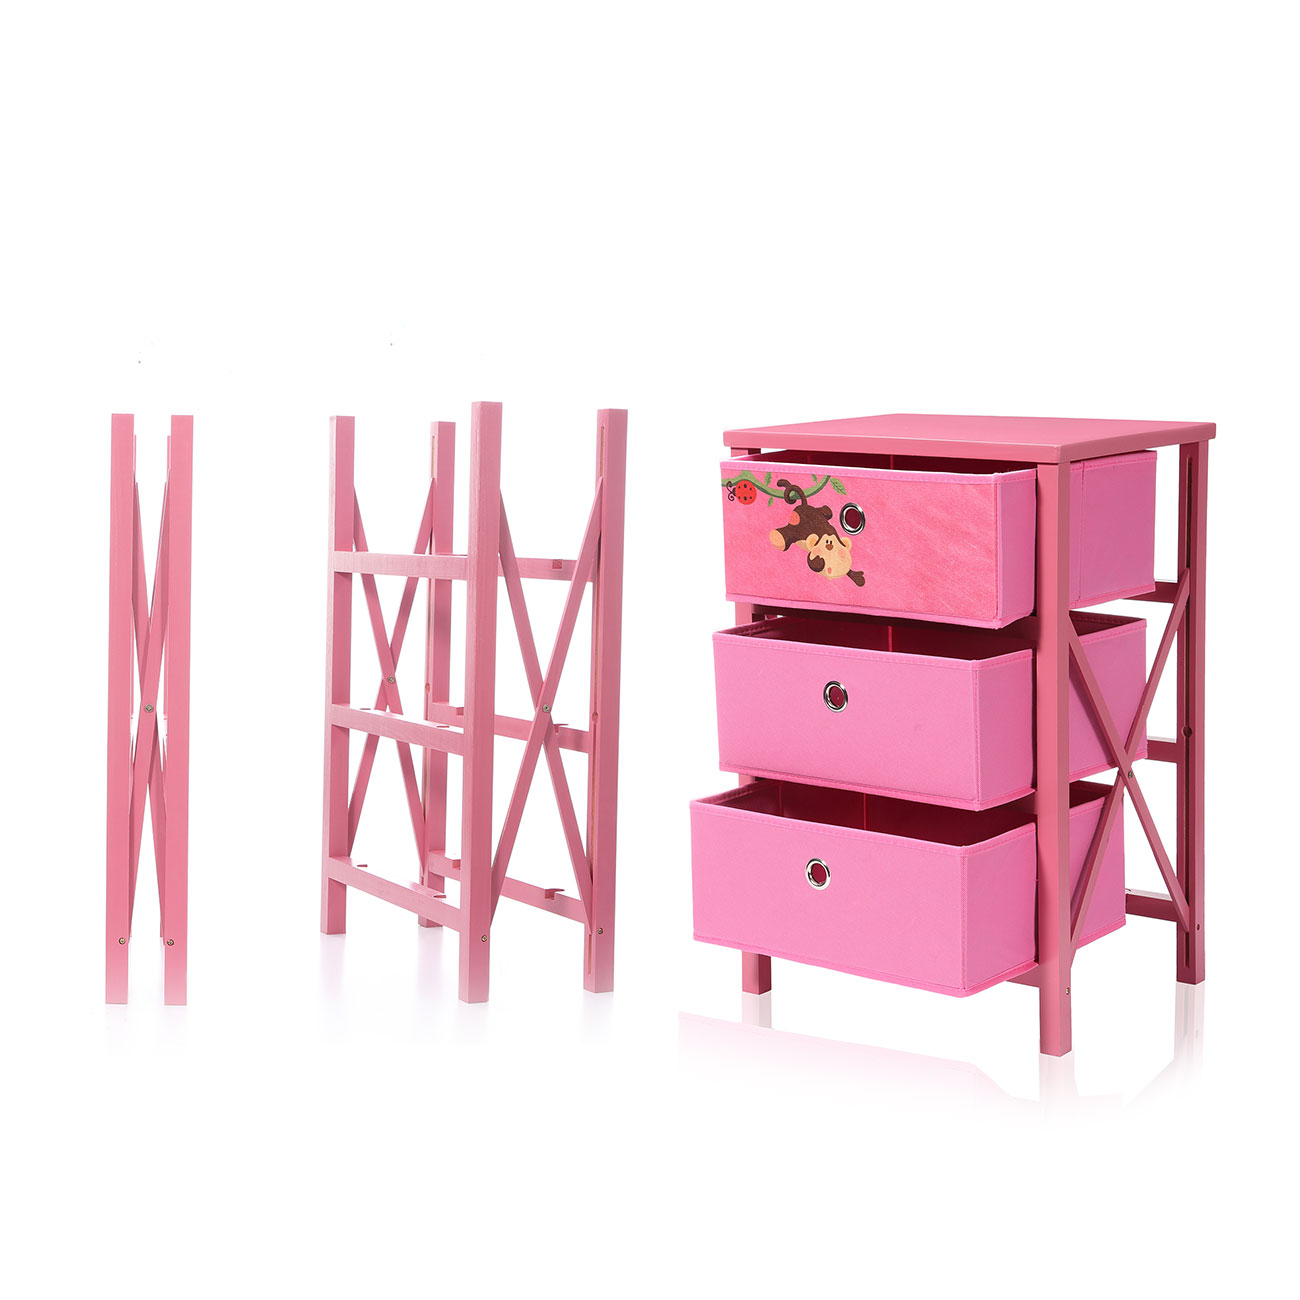 Makika Foldable Chest Of Drawers With 3 Drawers For Children In Pink U2013 Bild  13